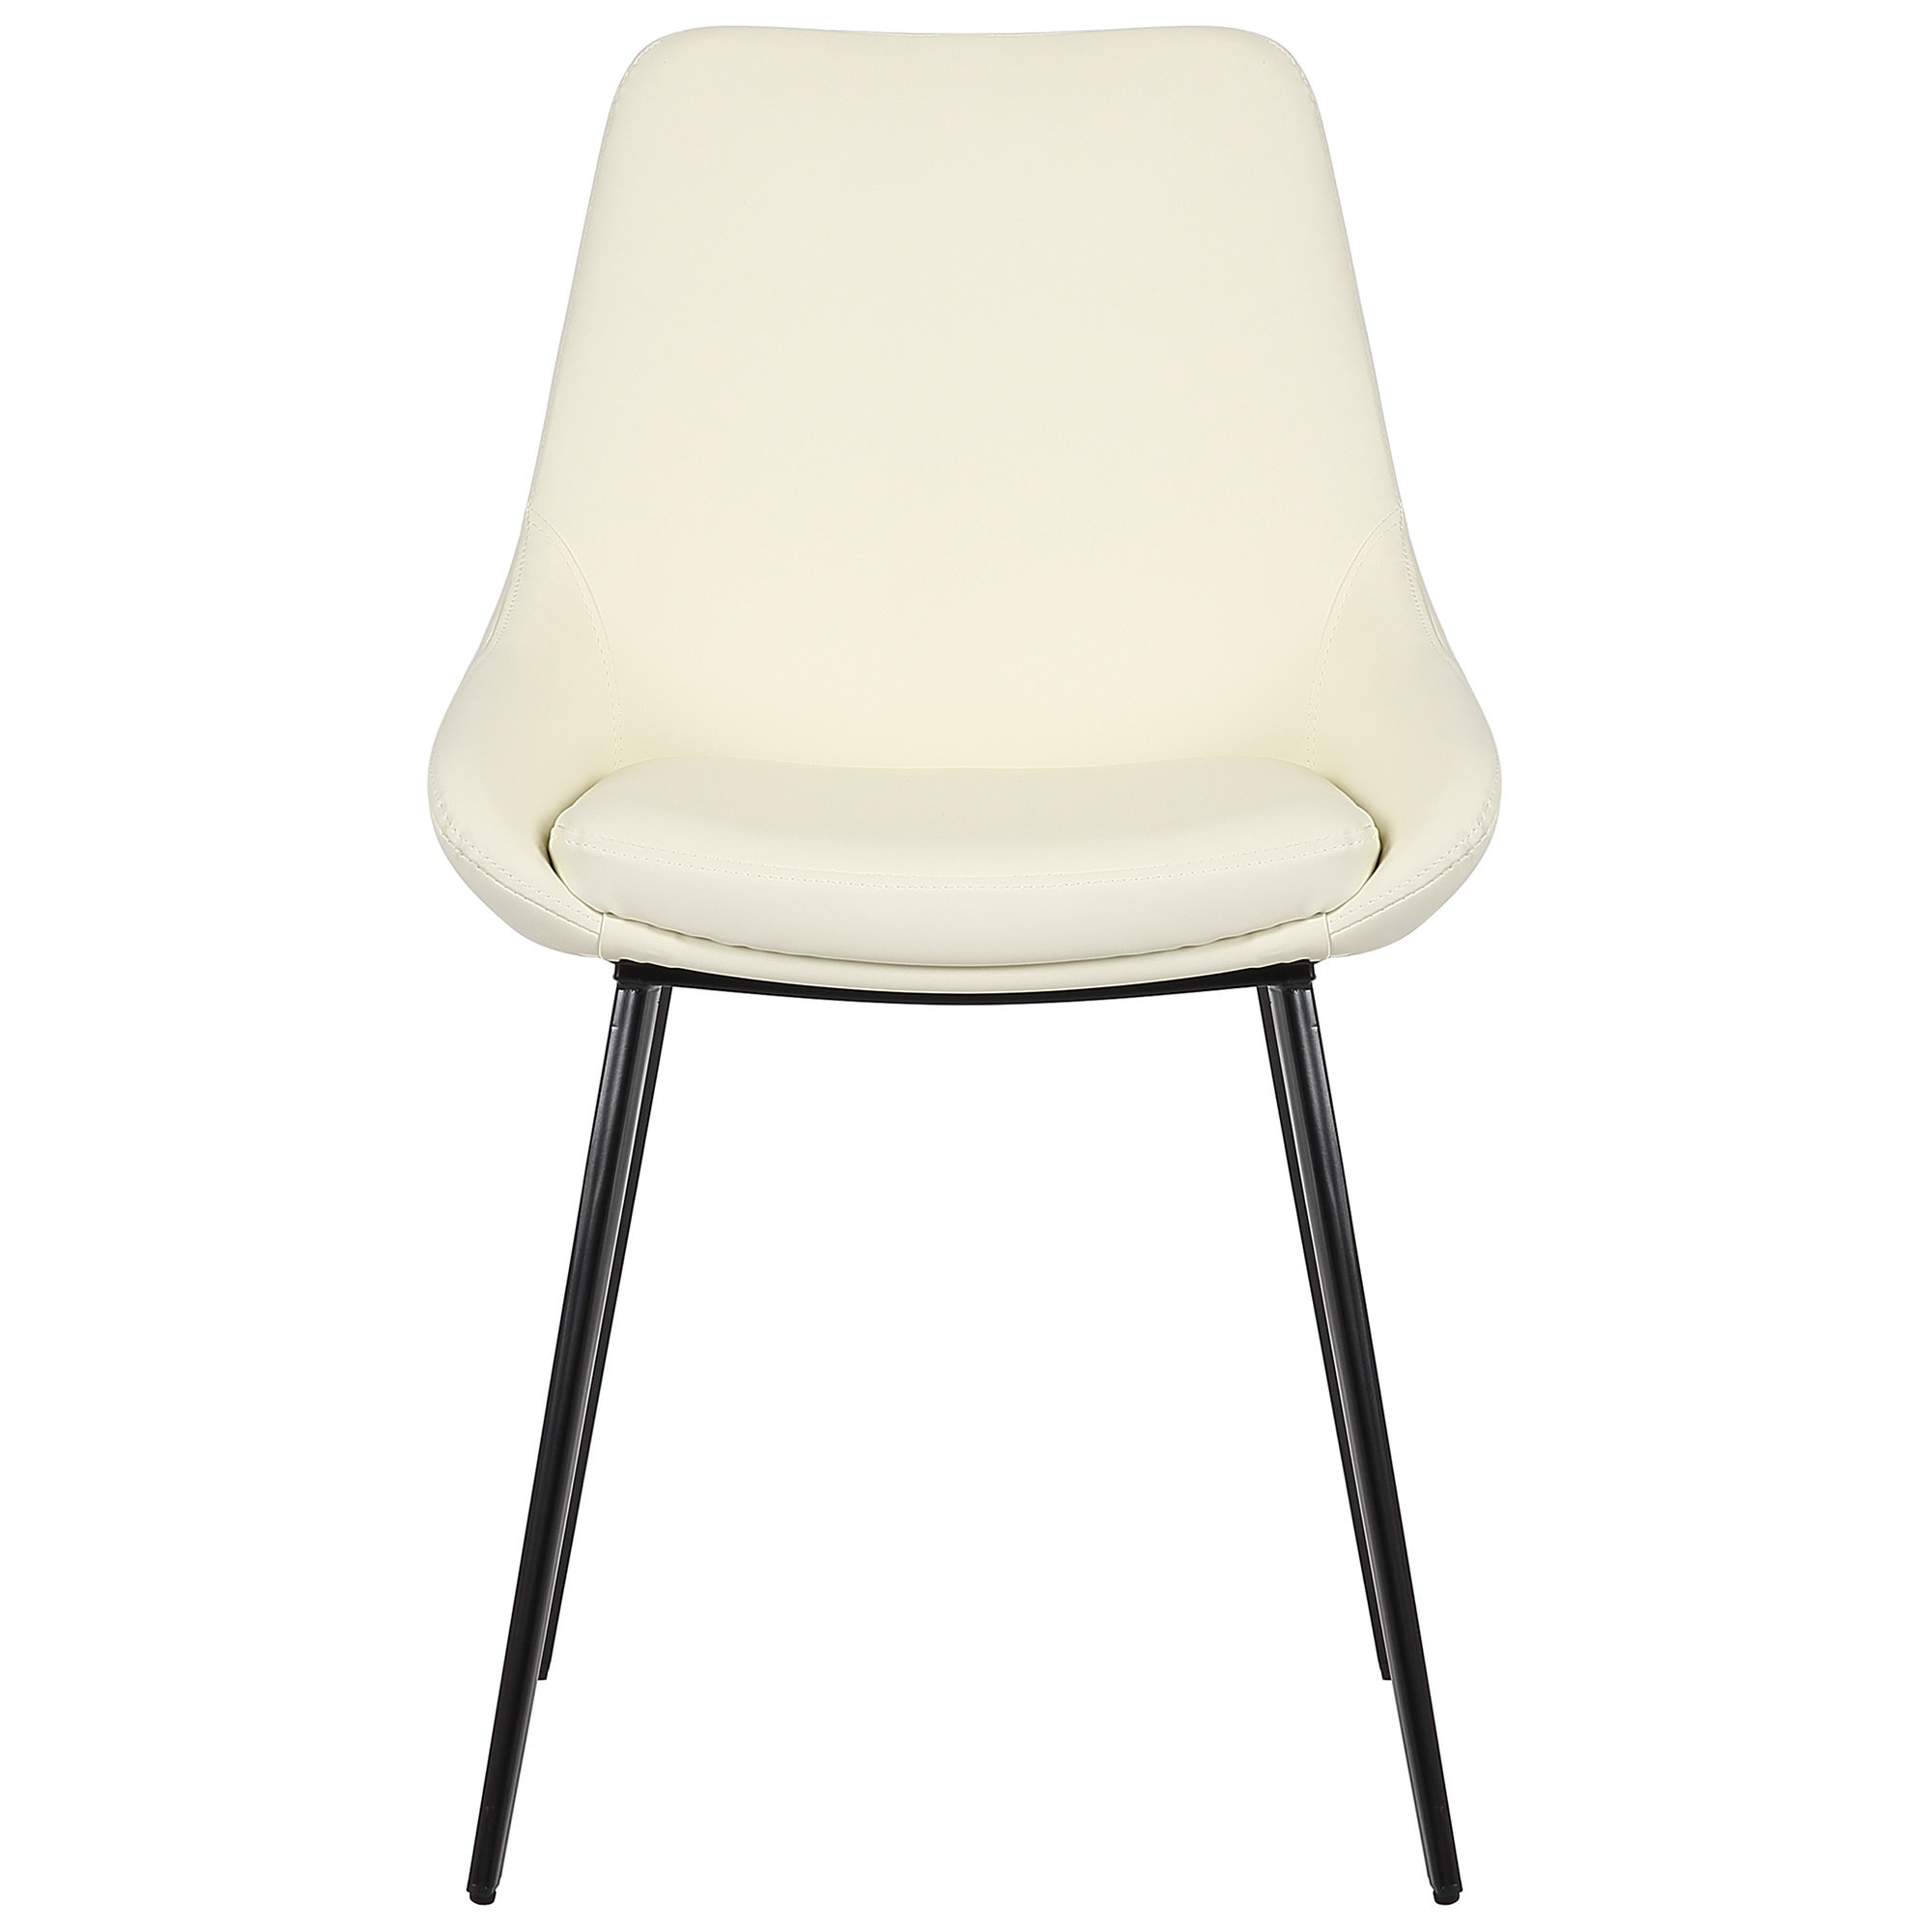 Daimyo Commercial Grade Faux Leather Dining Chair, Cream